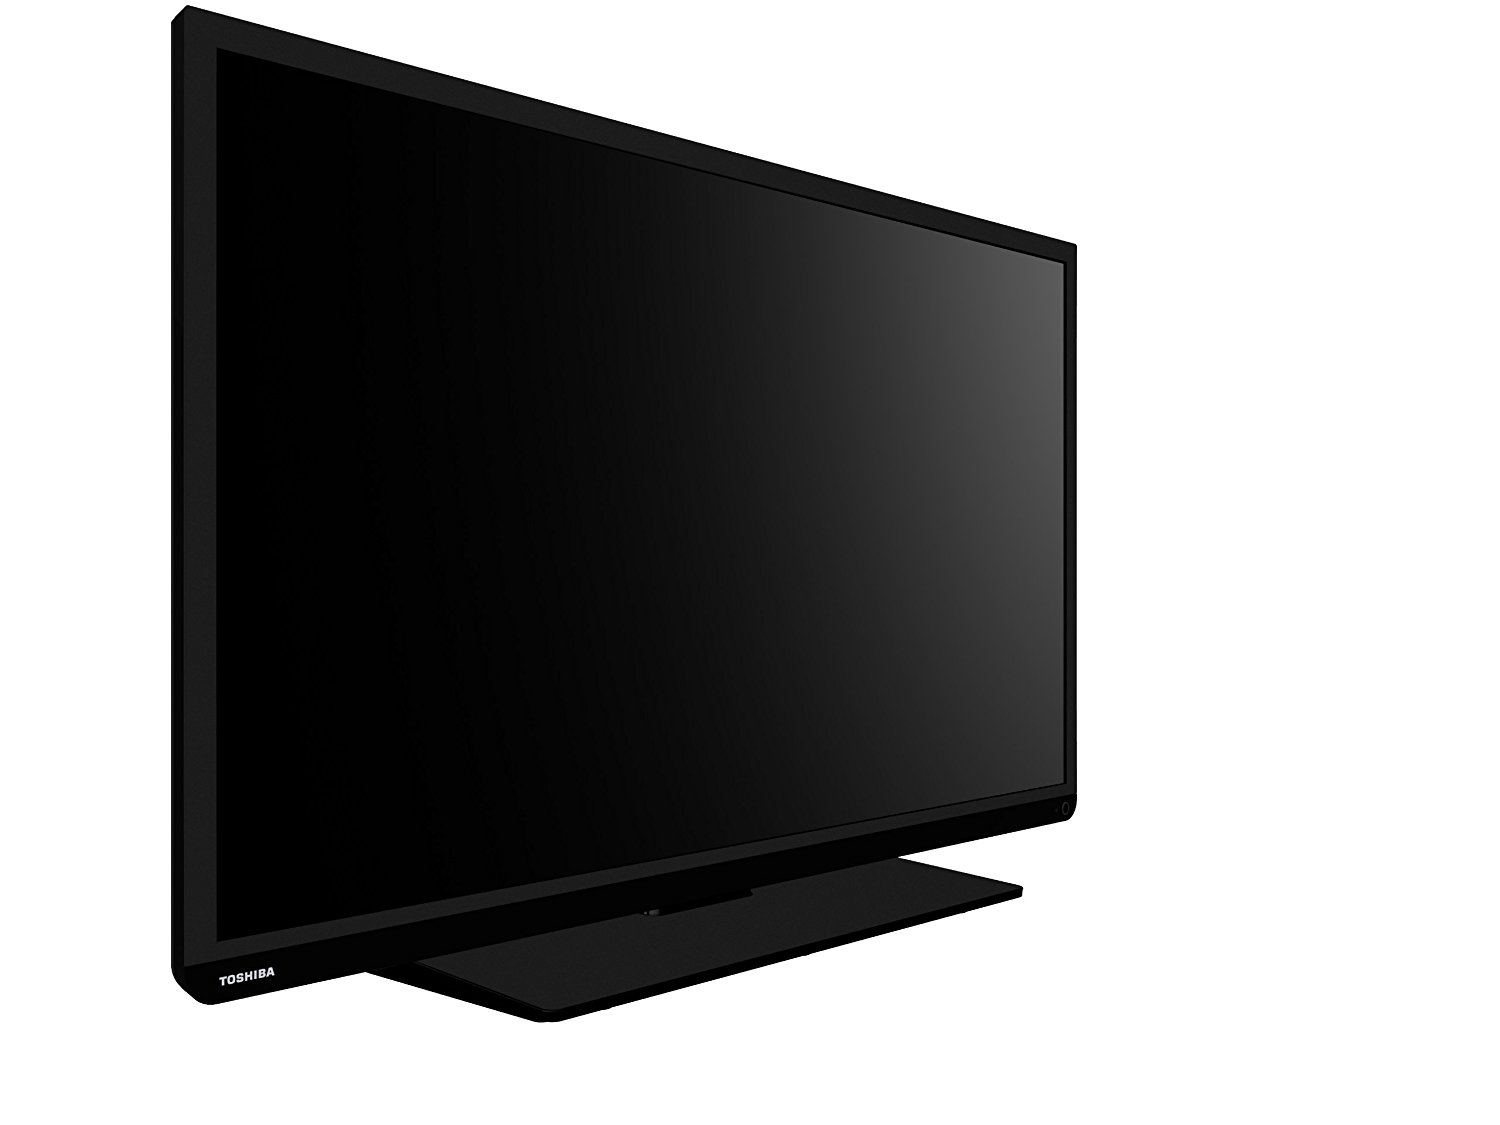 b ware toshiba 32l3433dg 80cm 32 fernseher full hd twin tuner smart tv von toshiba tv bei hgo gmbh. Black Bedroom Furniture Sets. Home Design Ideas